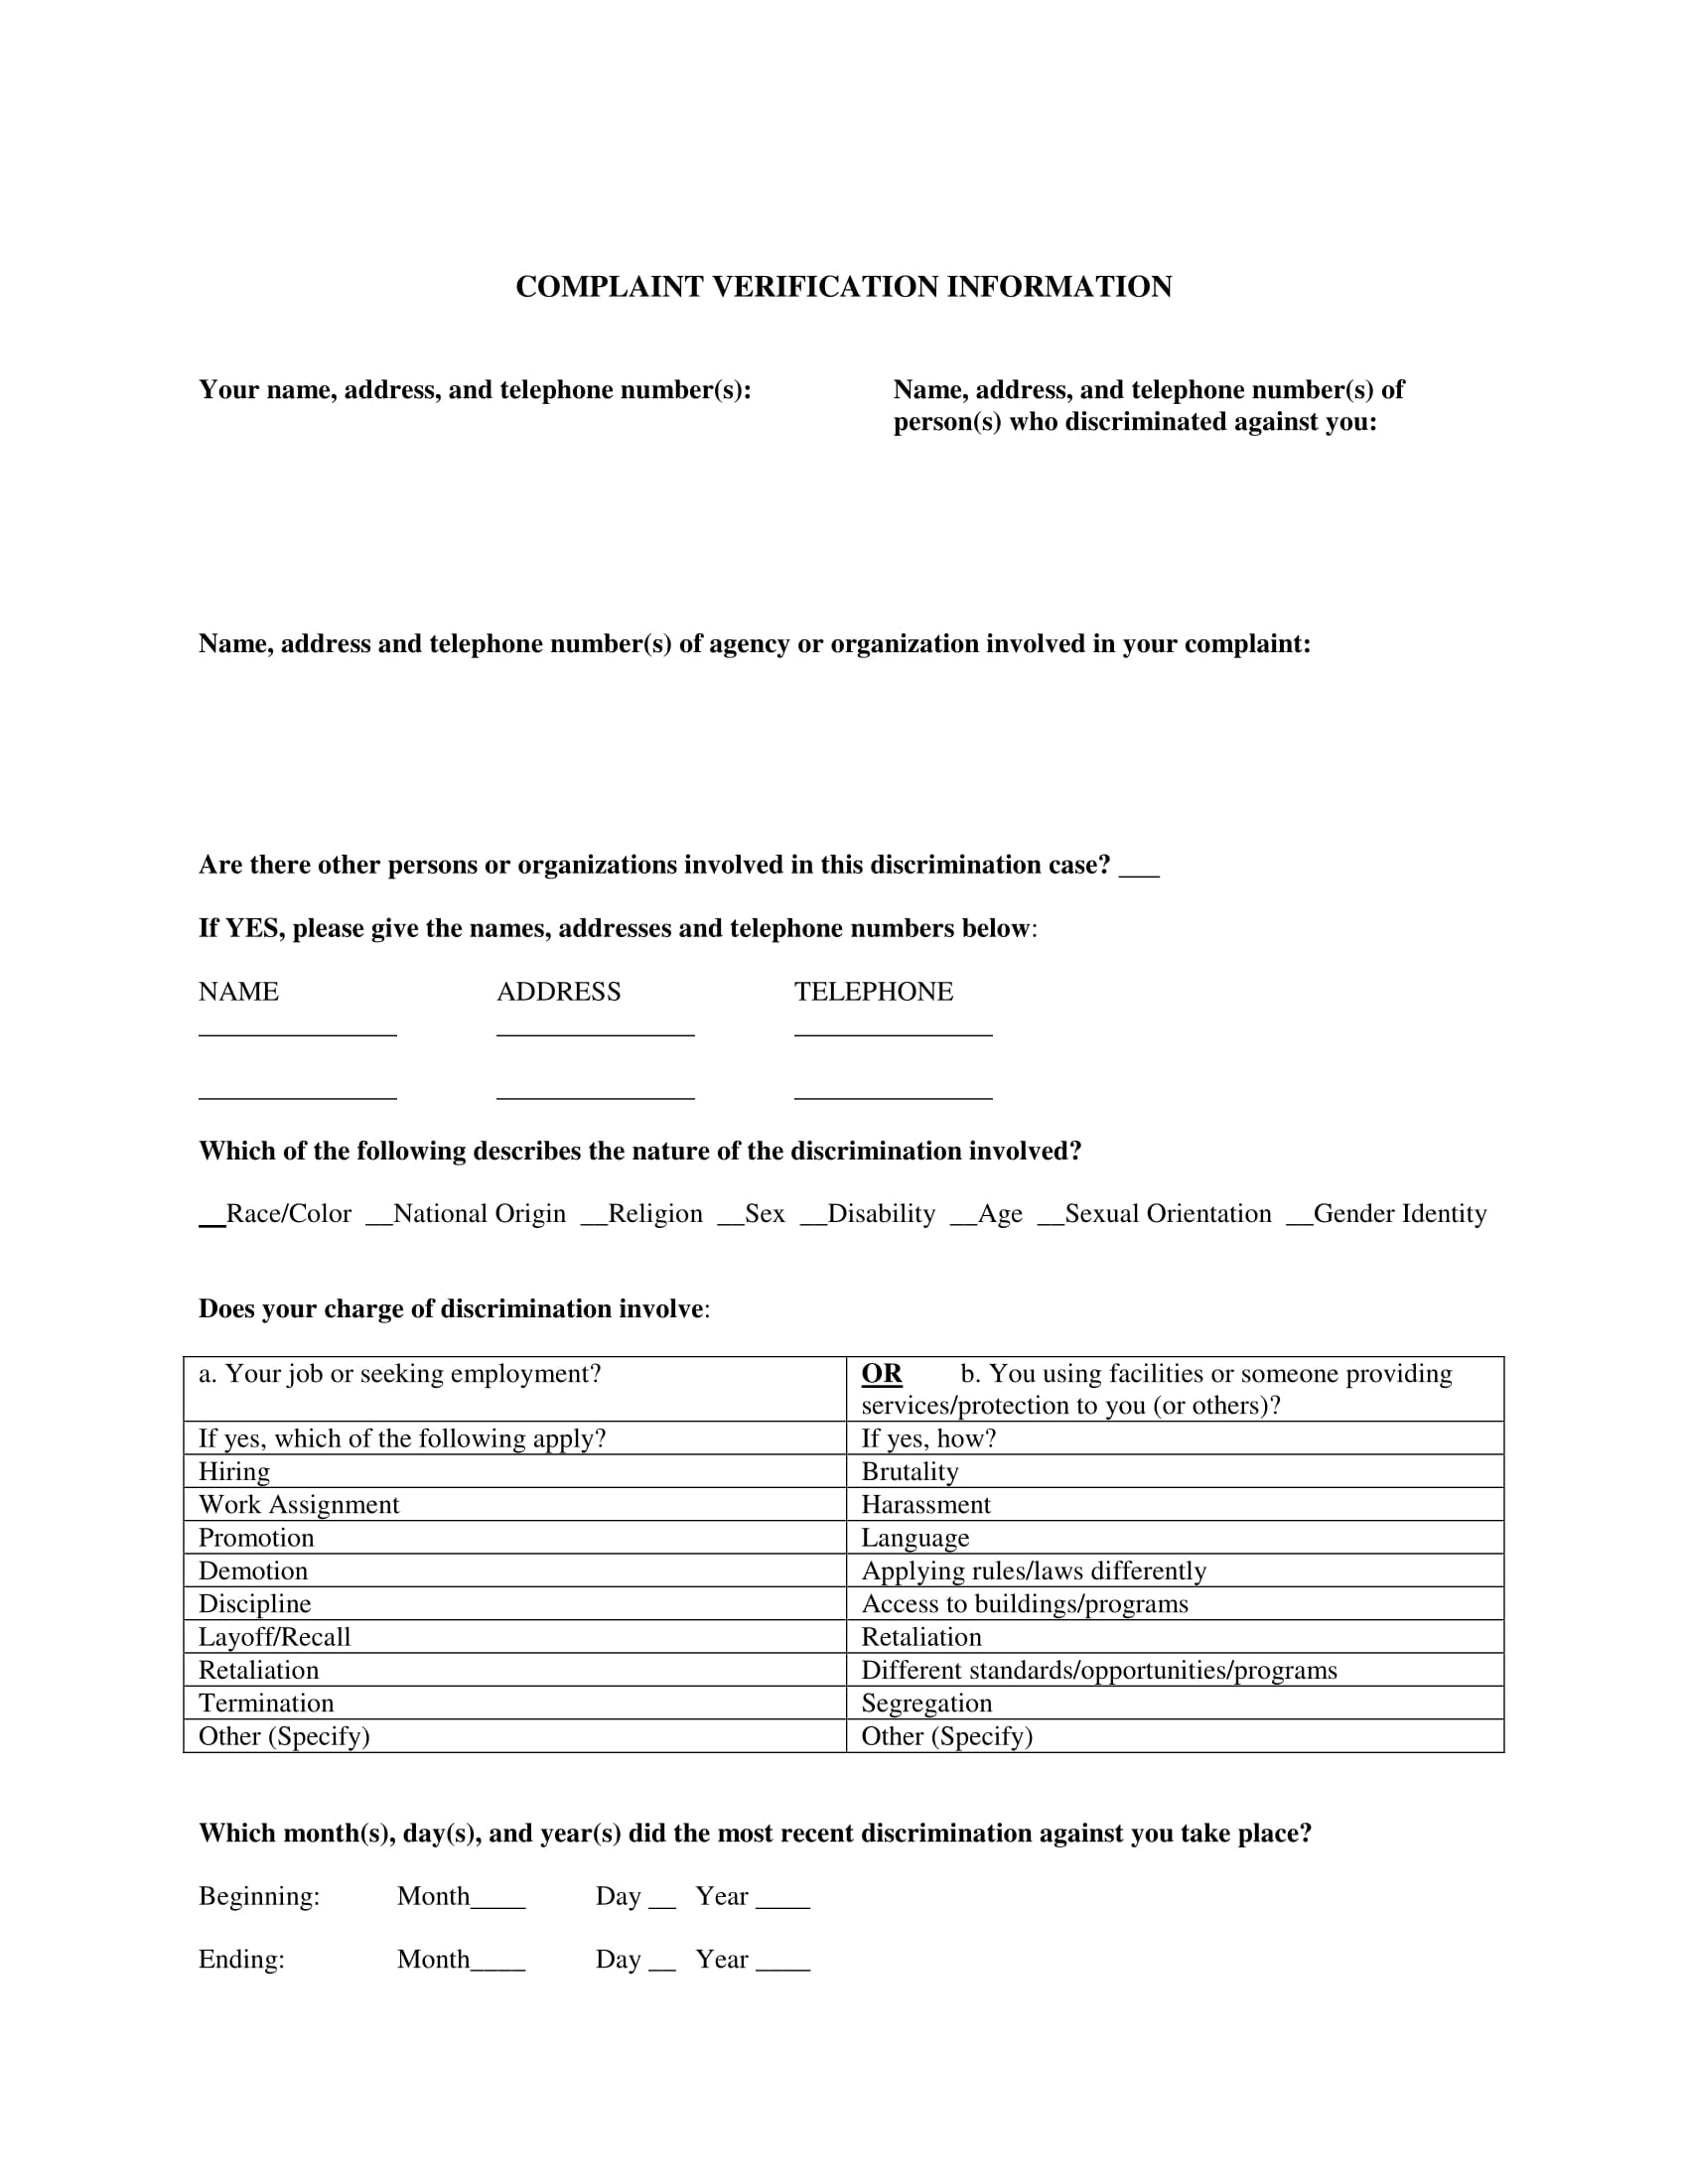 complaint verification information form 1